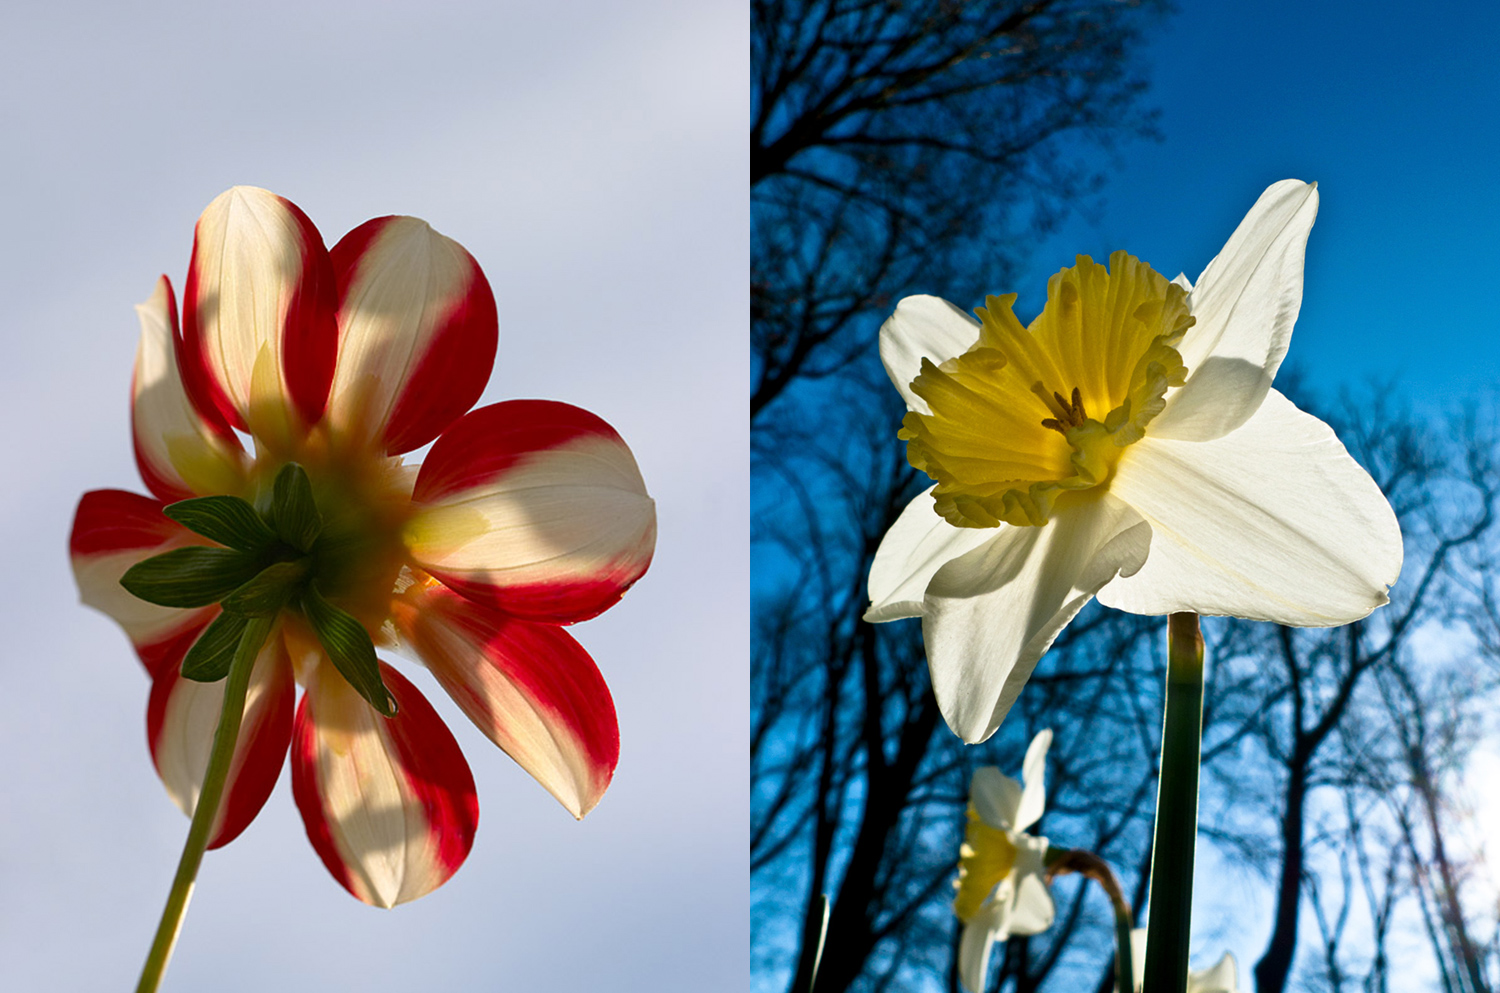 Low angle photography - flowers